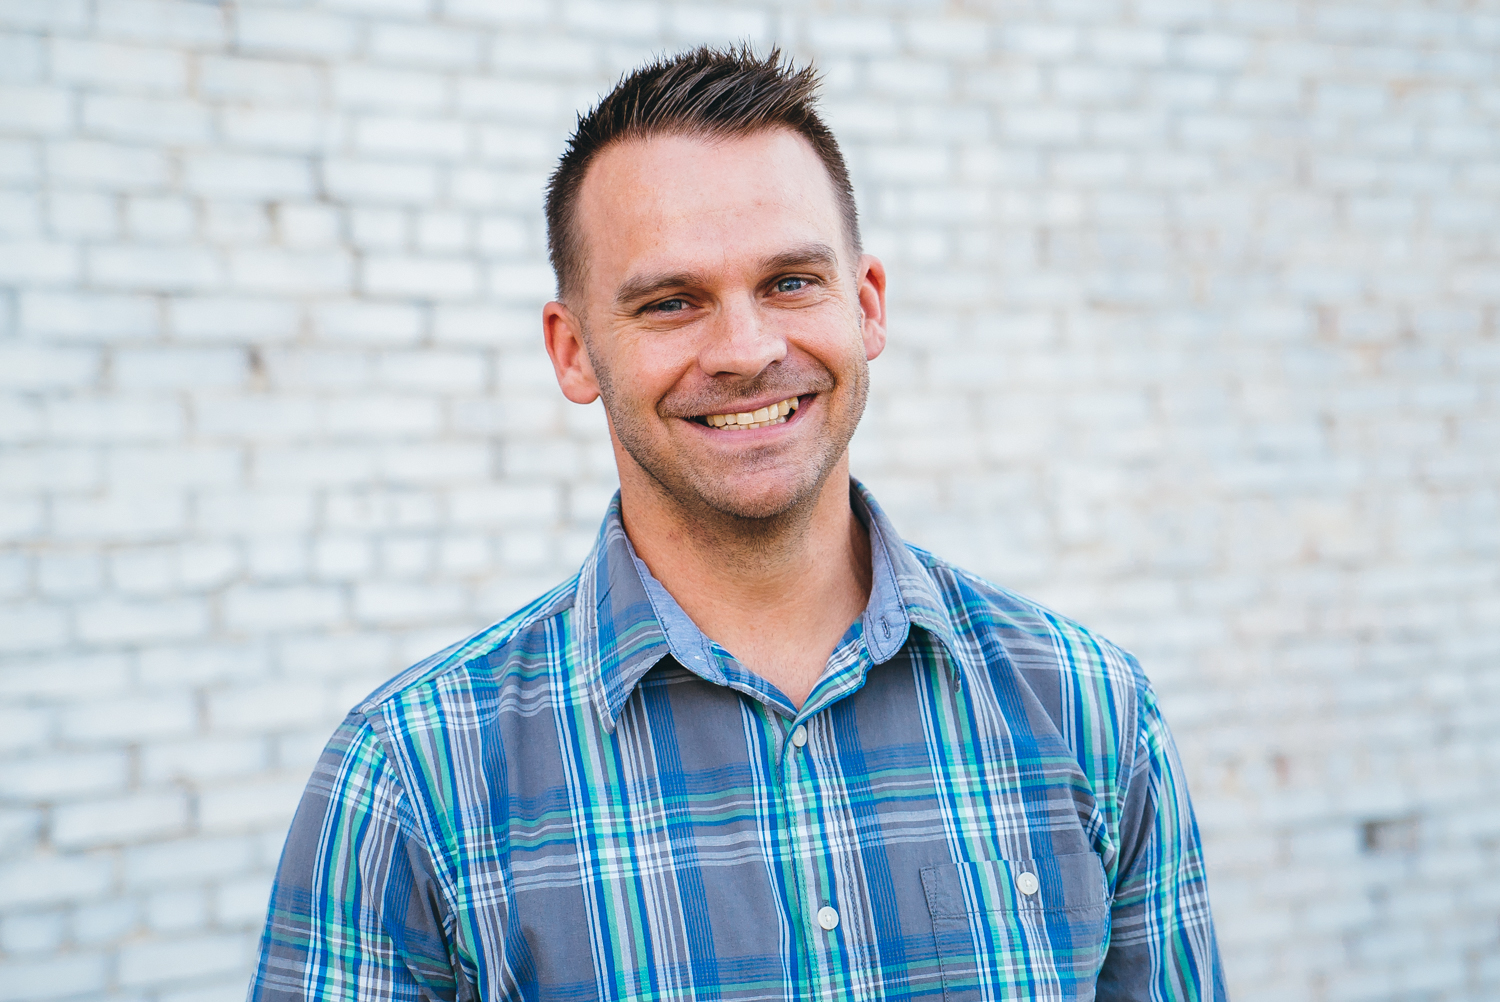 COMMUNITY PASTOR  Zach Snow is our community pastor. His love for the community, social connections, leadership development, missions,and teaching the word are only but a few ways he serves the local church.   Zach@FourWindsChurch.org